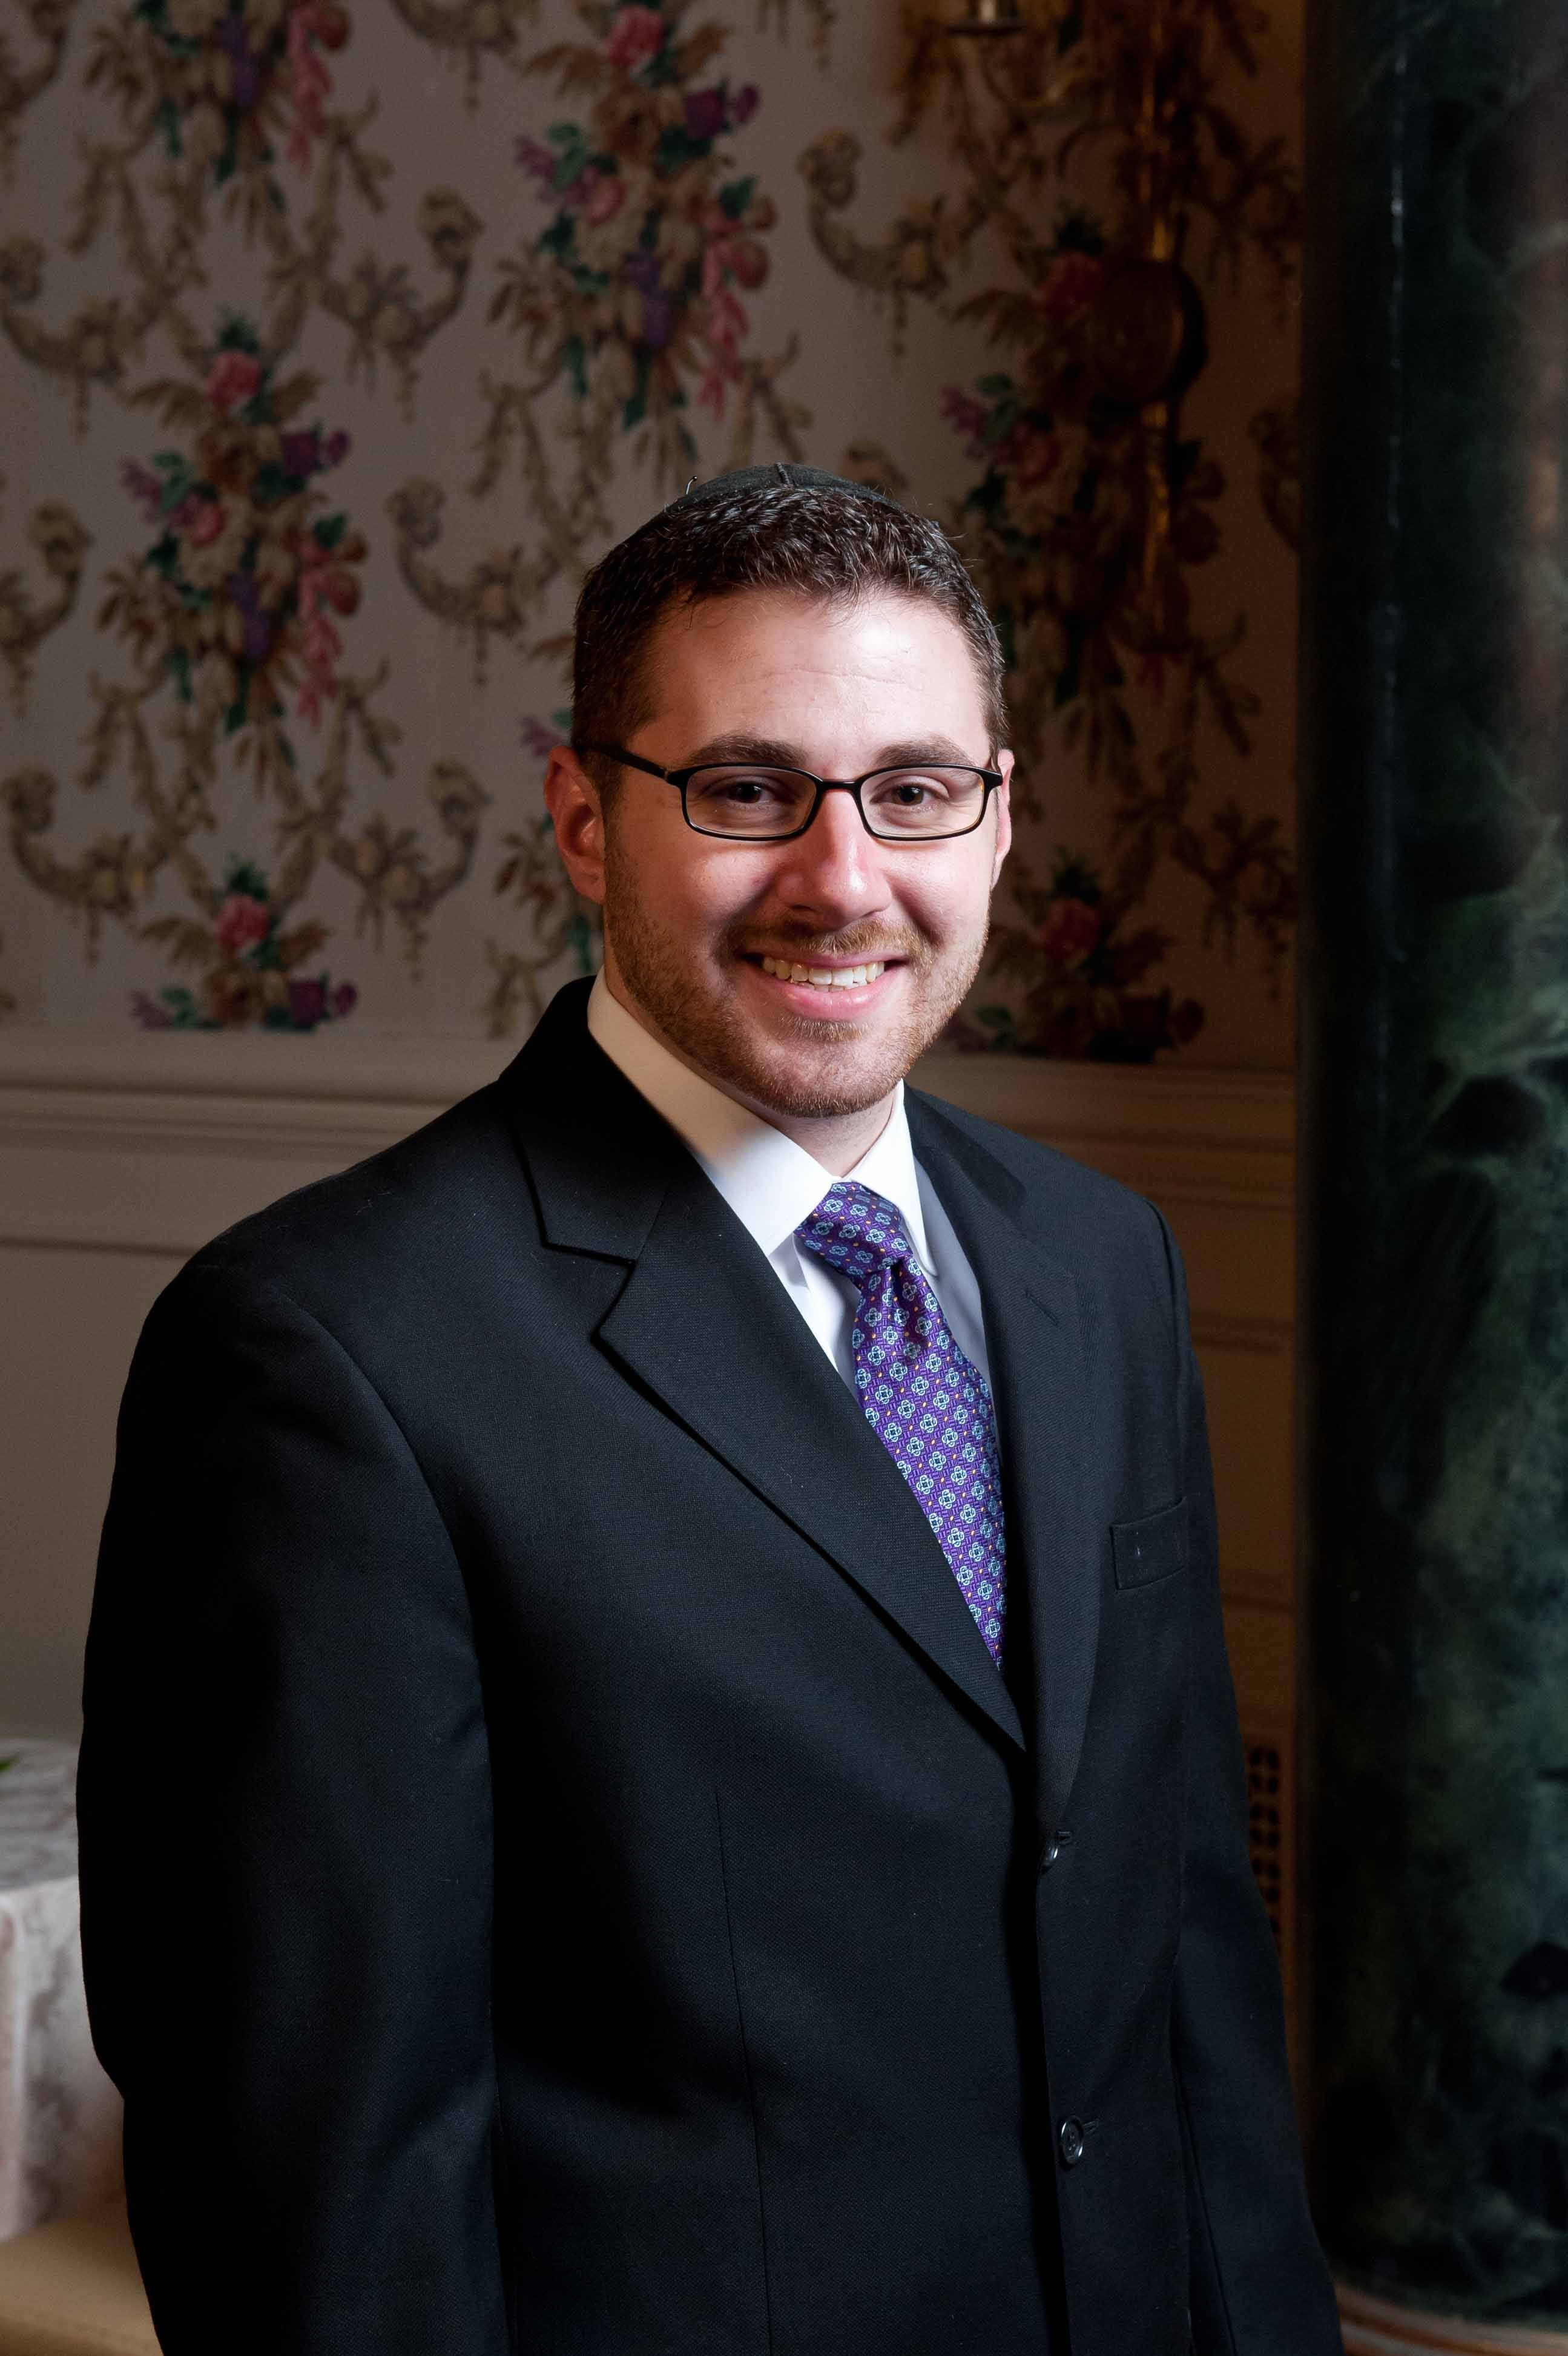 Rabbi Aaron Braun is the spiritual leader at Northbrook Community Synagogue